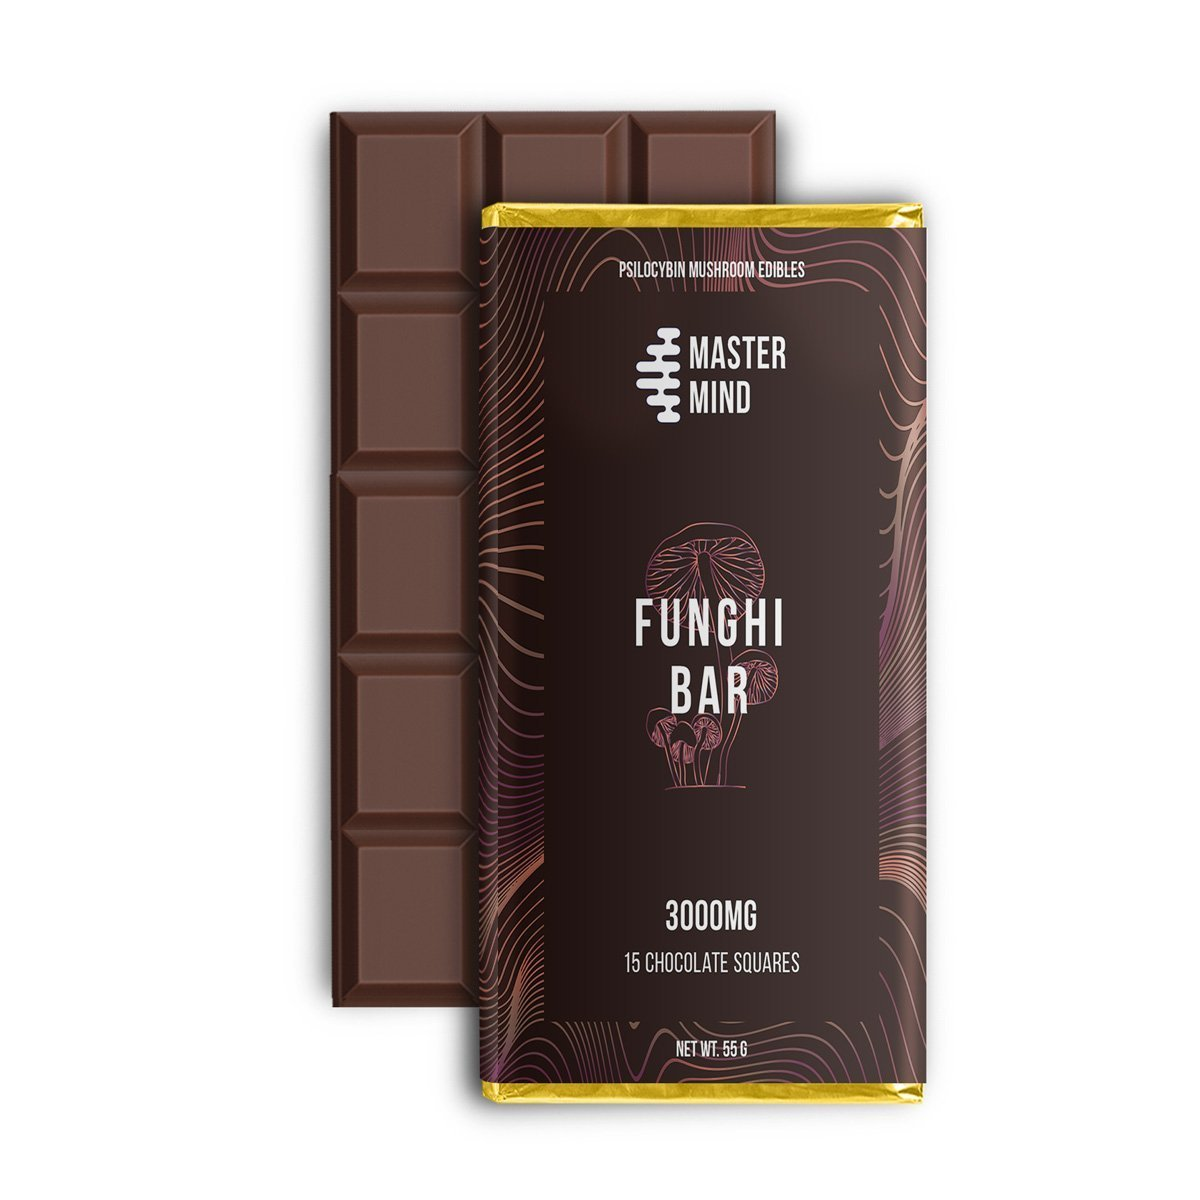 Master Mind - Funghi Bar 3000 Mg